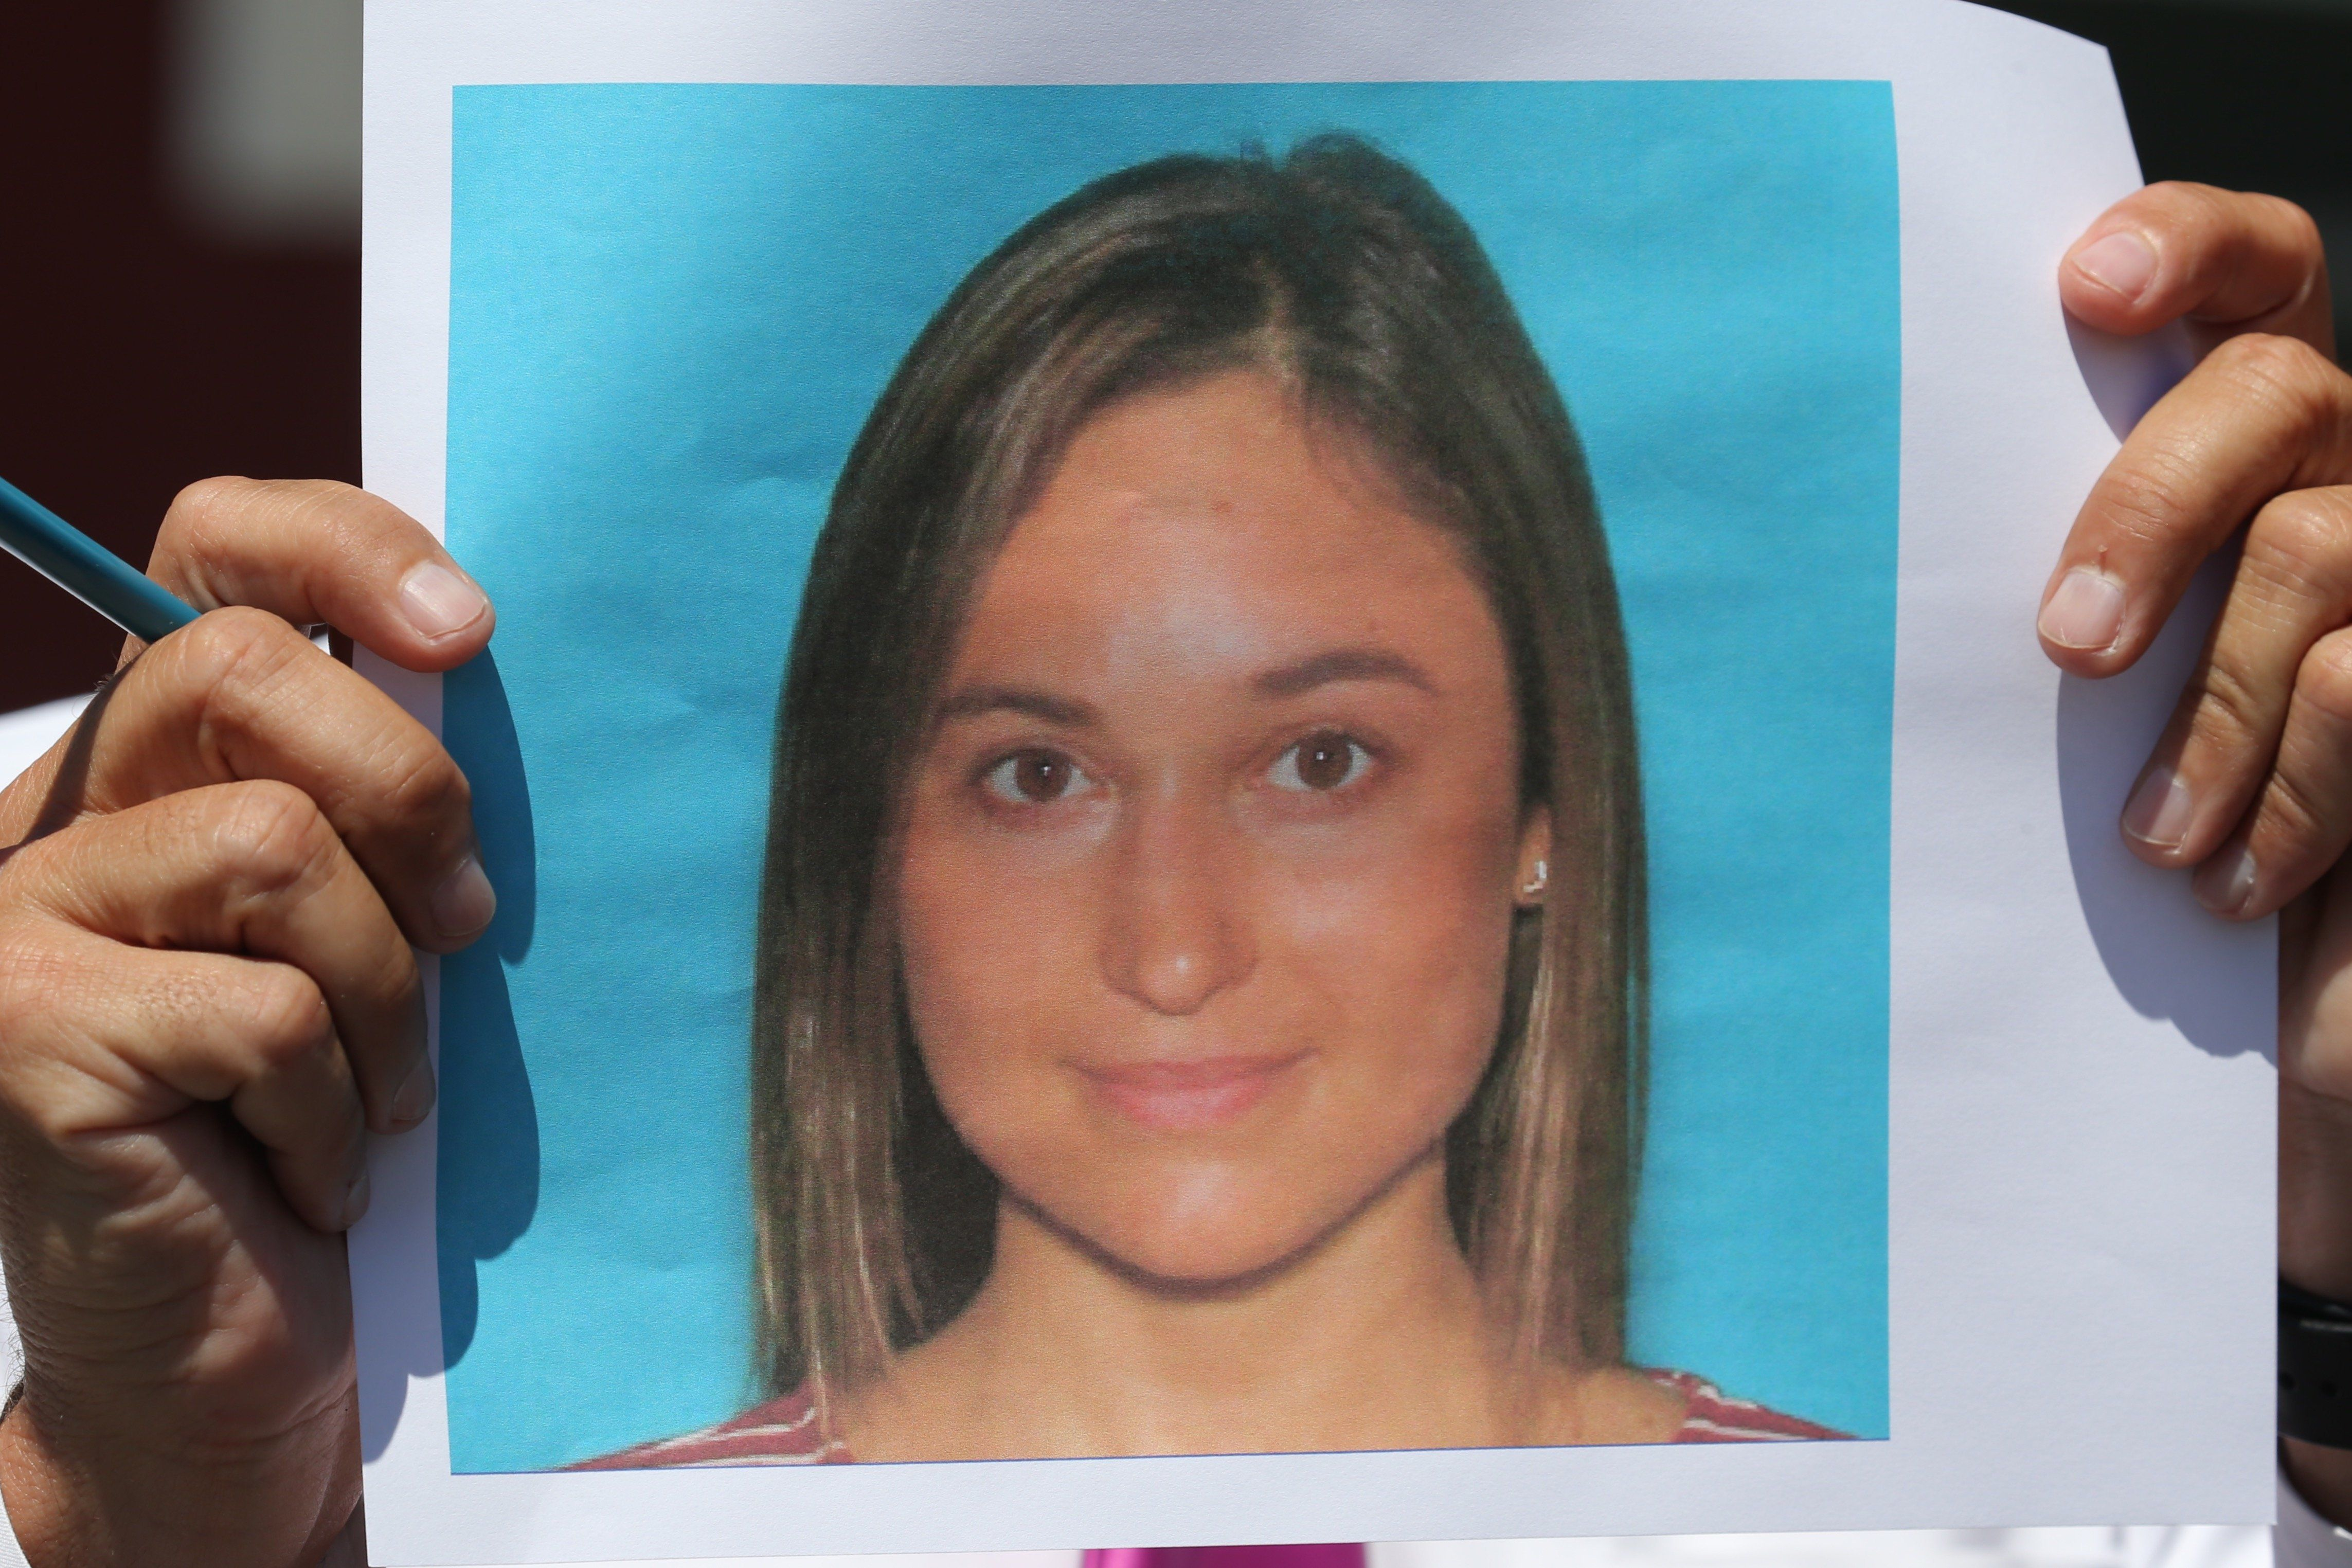 PRINCETON, MA - AUGUST 8: A photo of victim Vanessa Marcotte was shown to the press in Princeton, Mass., Aug. 8, 2016. Marcotte, a 27-year-old New York City woman, was killed Sunday while jogging alone on a wooded road about a half-mile from her mothers home. A State Police K-9 unit found the body of Vanessa Marcotte, 27, a 2011 Boston University graduate who grew up in Leominster and worked at Google, in the woods off Brooks Station Road at 8:20 p.m., several hours after her family reported that she had gone missing. (Photo by David L. Ryan/The Boston Globe via Getty Images)